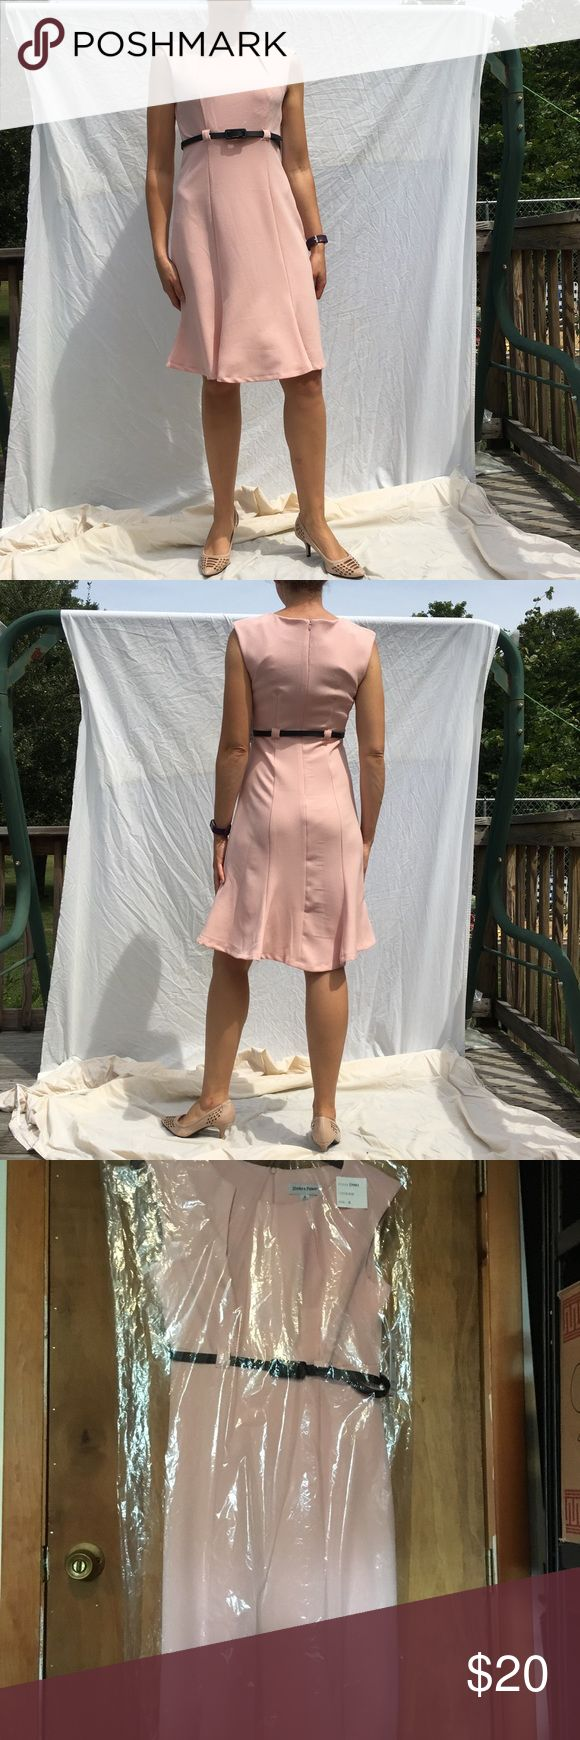 """NWT blush dress w/ belt, size 6 This Blush dress has cap sleeves & a beautiful pleat accent at the neckline the quality of the materials and construction will not disappoint!! The approximate measurements are 14""""@waist, 16""""@bust, 39 1/2 top to bottom. This is a timeless dress that would be great for the office or a special event! I bought this dress (& many others I have for sale) within the last 6 months & would love to see someone else be able to enjoy them!! Shelby & Palmer Dresses Midi"""